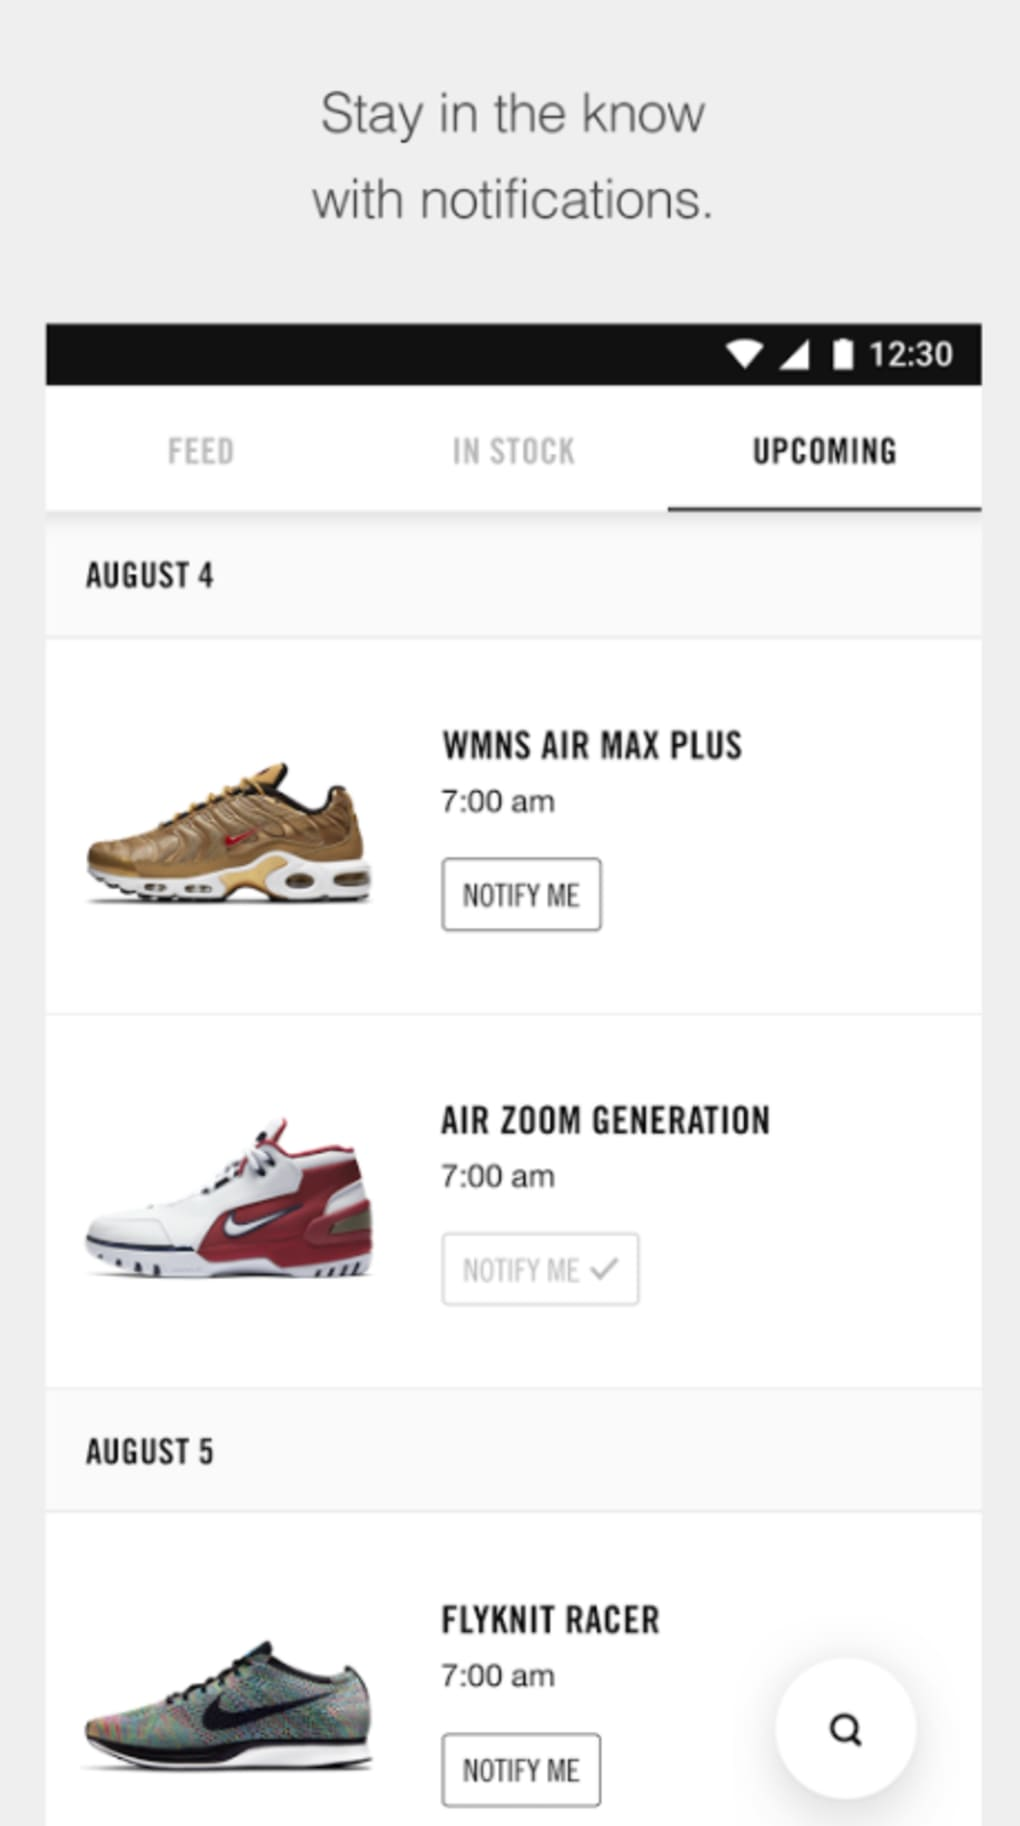 Nike SNKRS for Android - Download